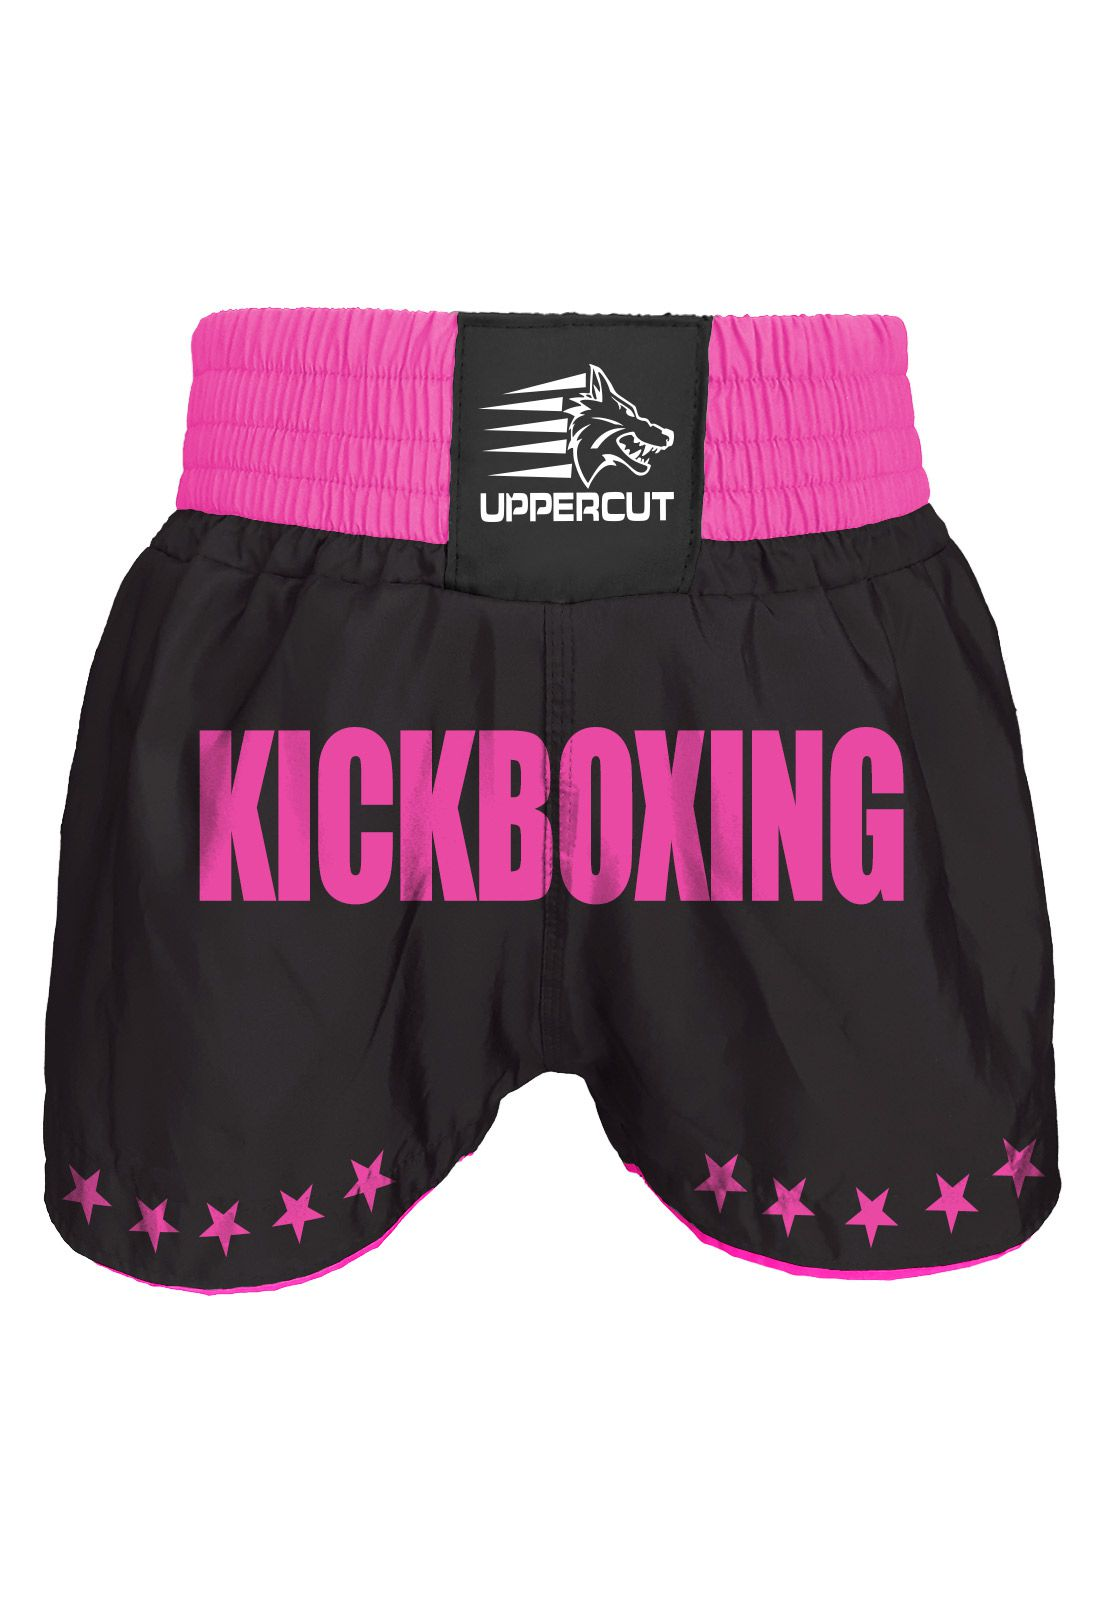 Calção Short Kickboxing  - GP - Preto/Rosa- Uppercut